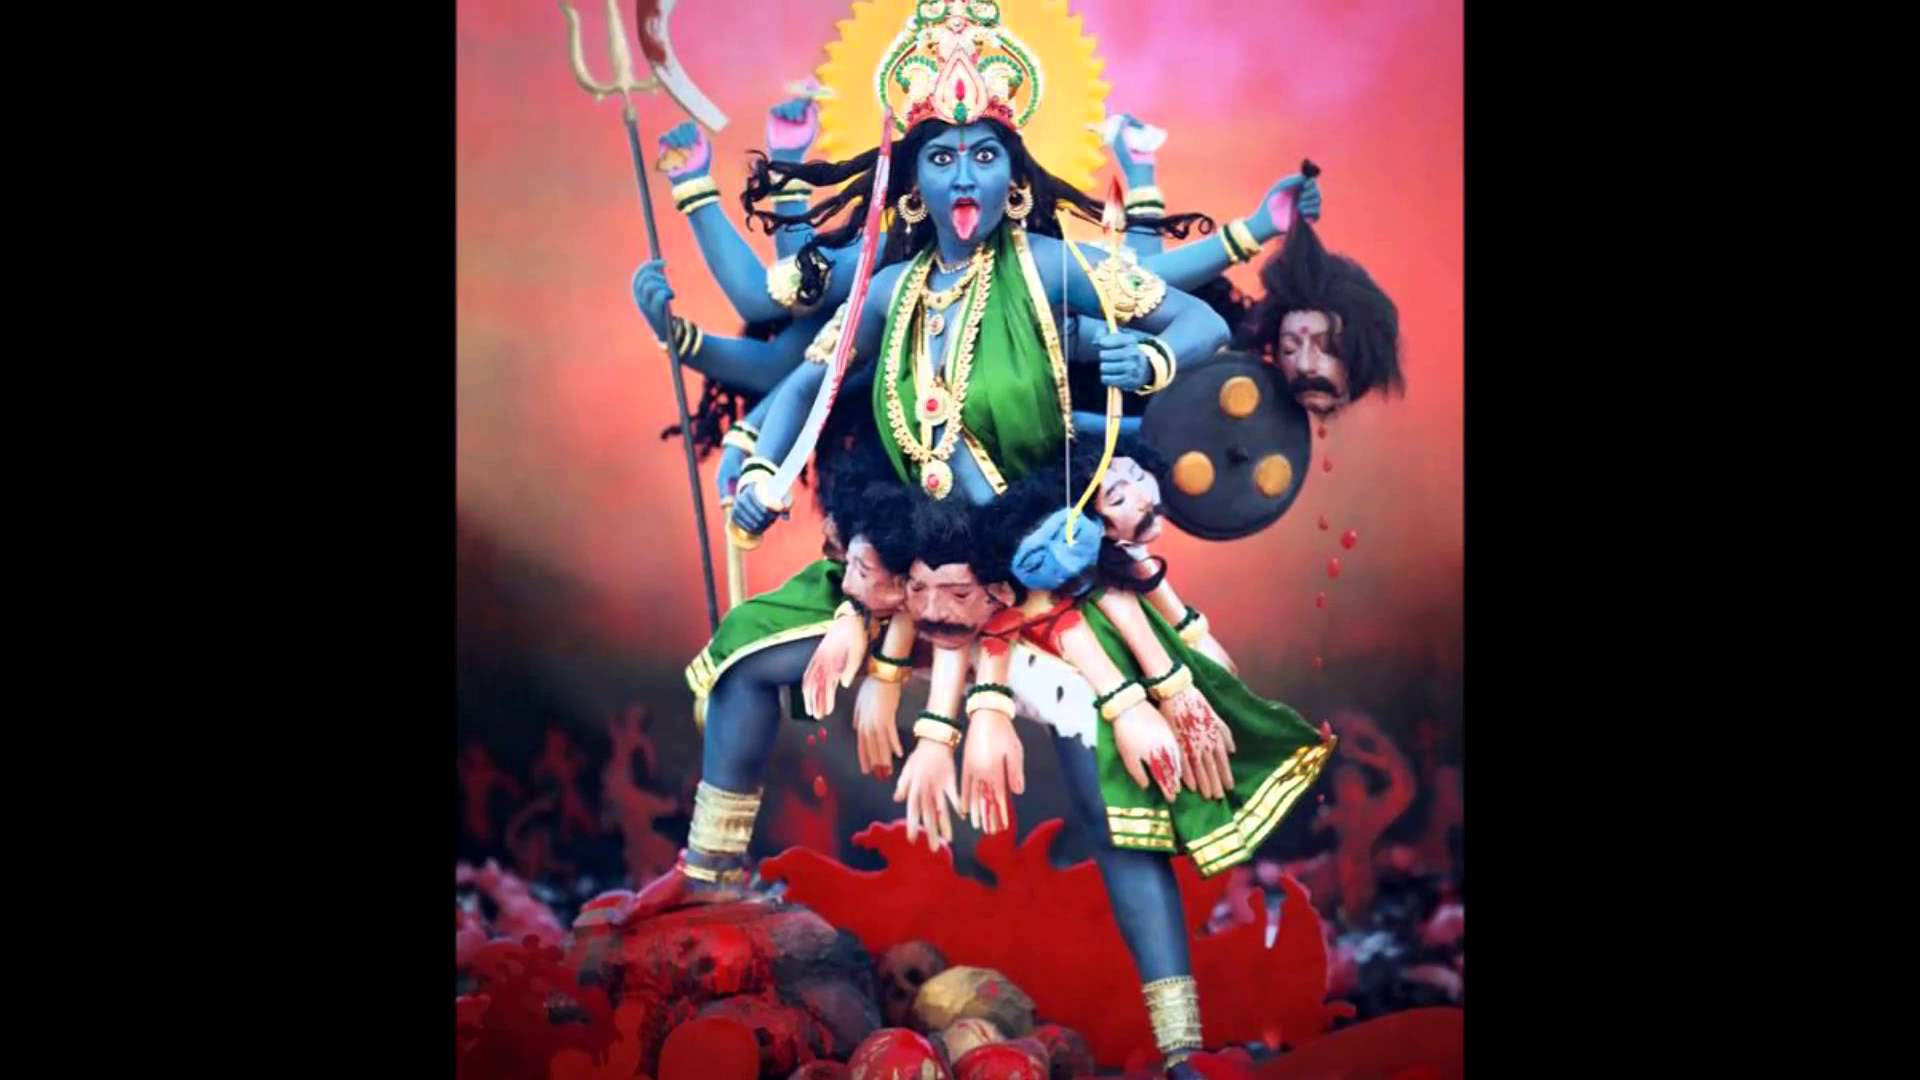 Maa Kali Hd Wallpaper 1080p